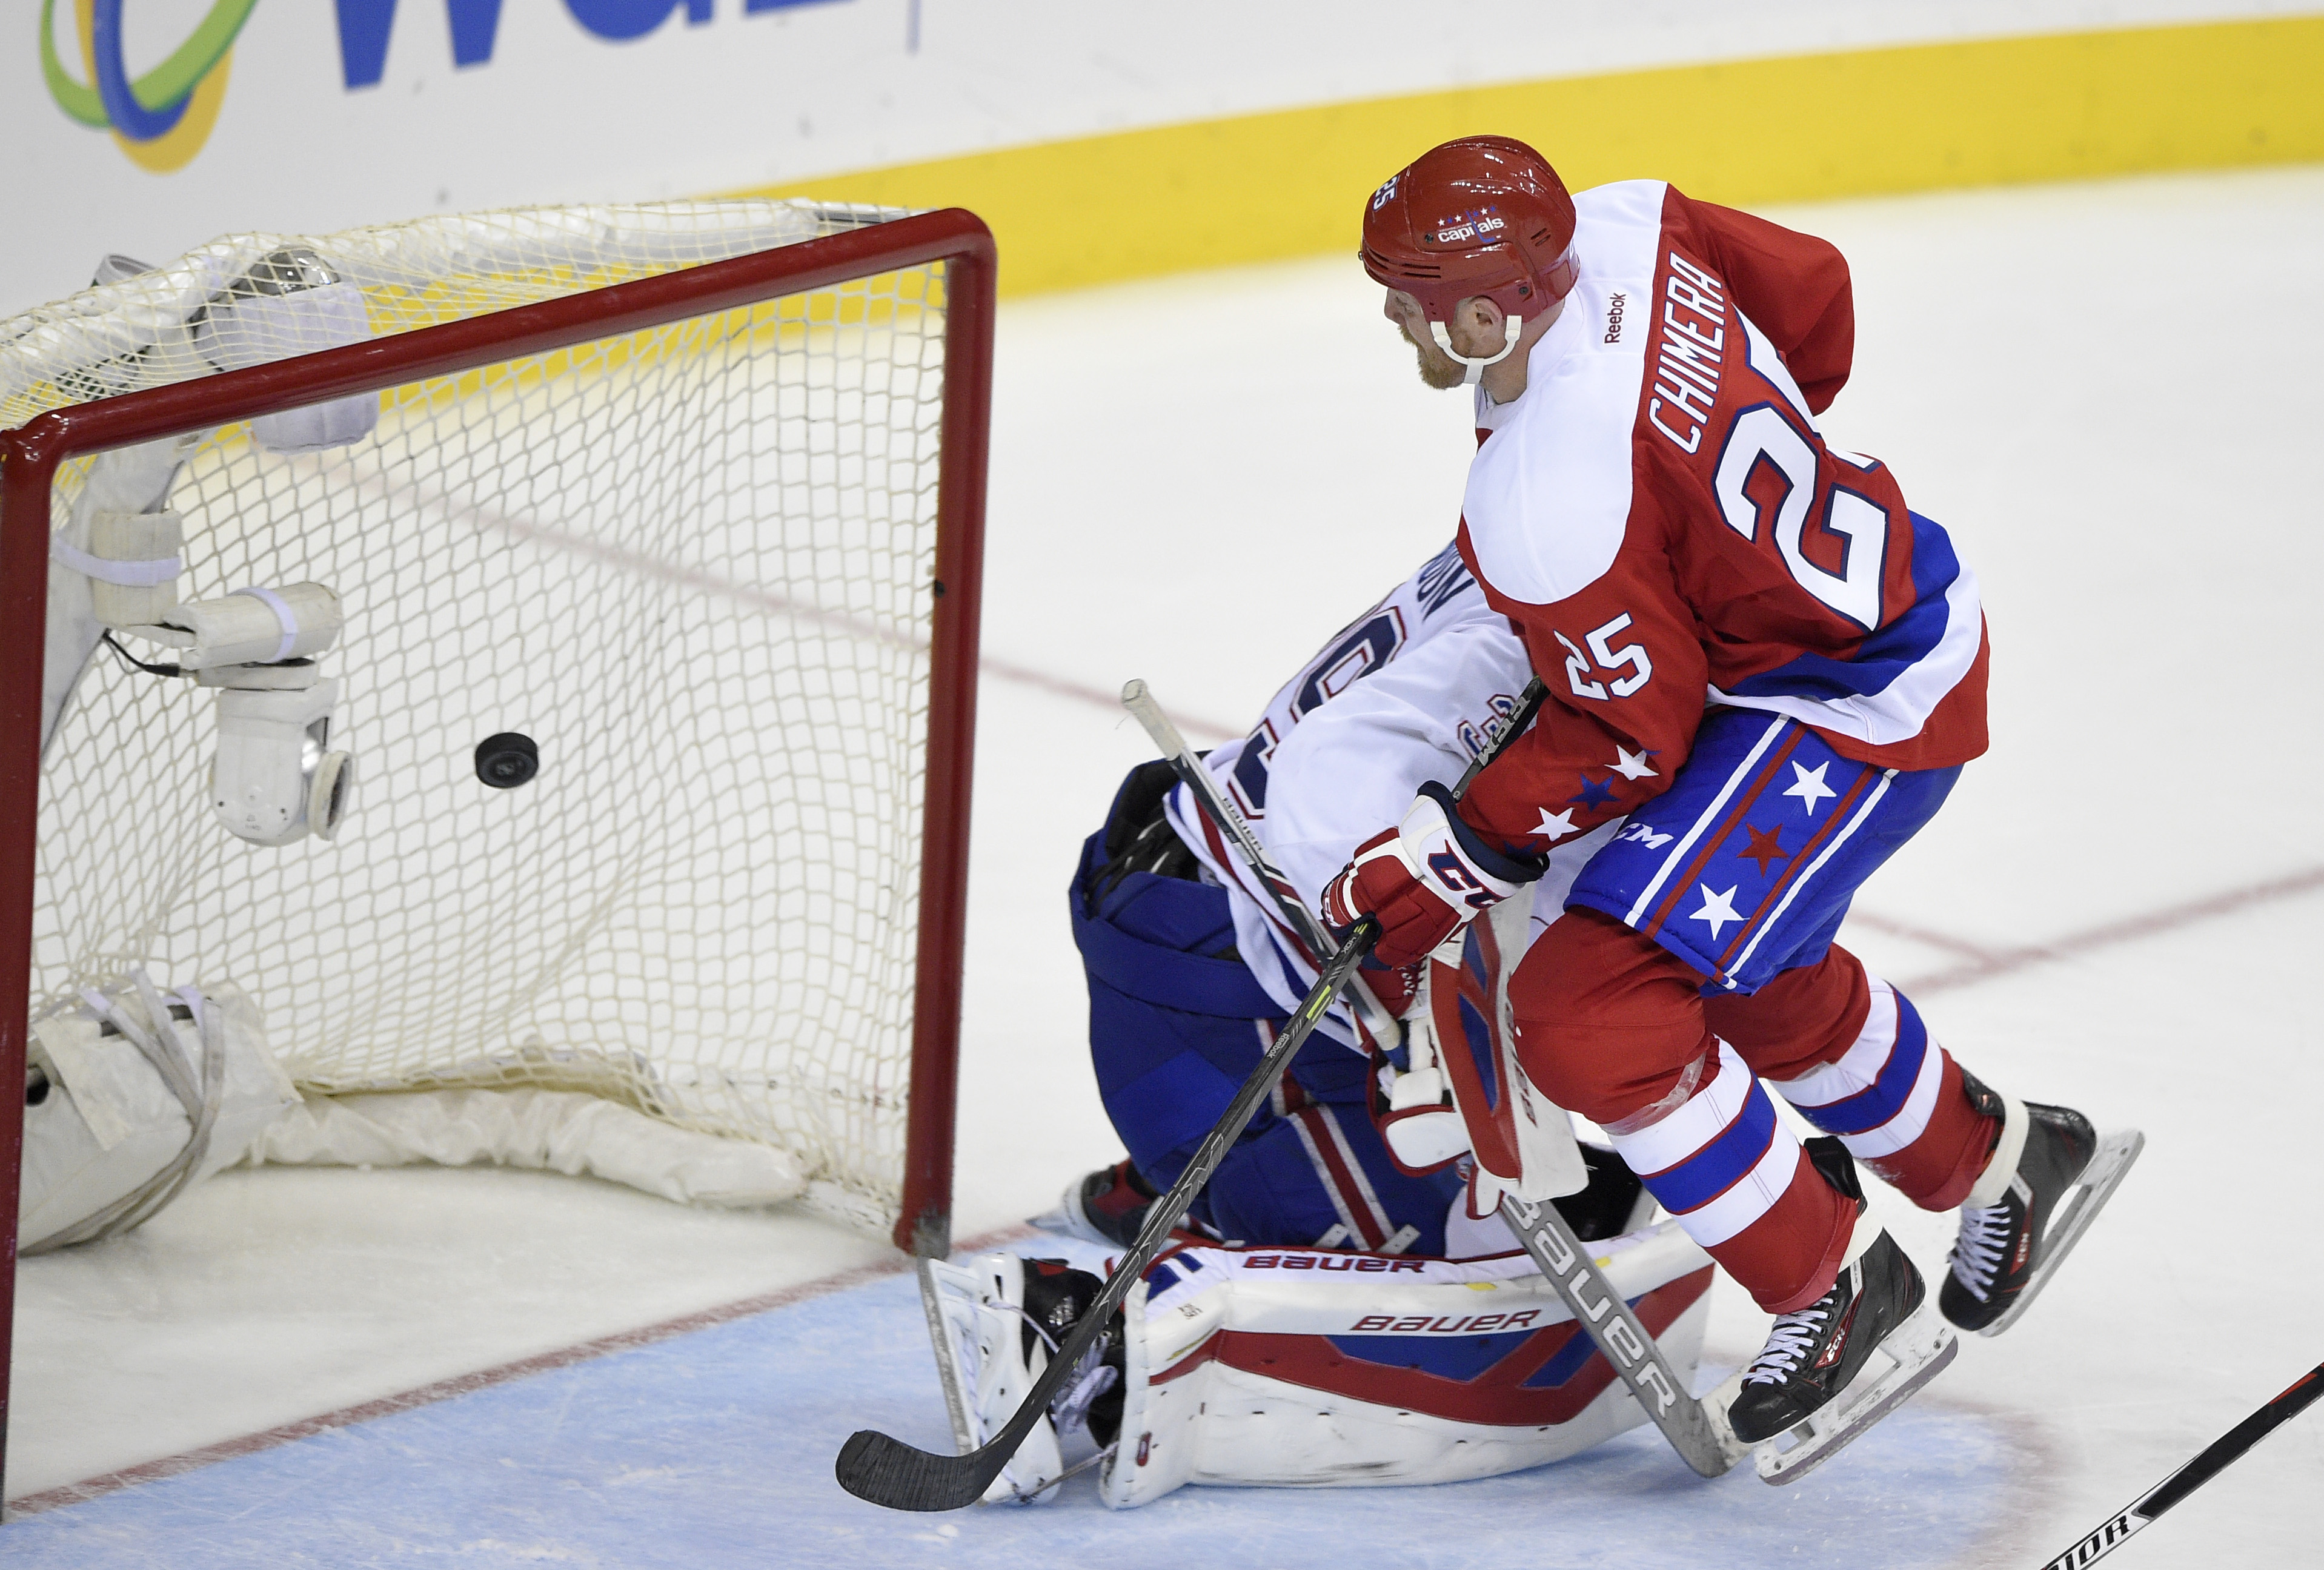 Washington Capitals left wing Jason Chimera (25) scores a goal against Montreal Canadiens goalie Mike Condon (39) during the third period of an NHL hockey game, Saturday, Dec. 26, 2015, in Washington. The Capitals won 3-1. (AP Photo/Nick Wass)